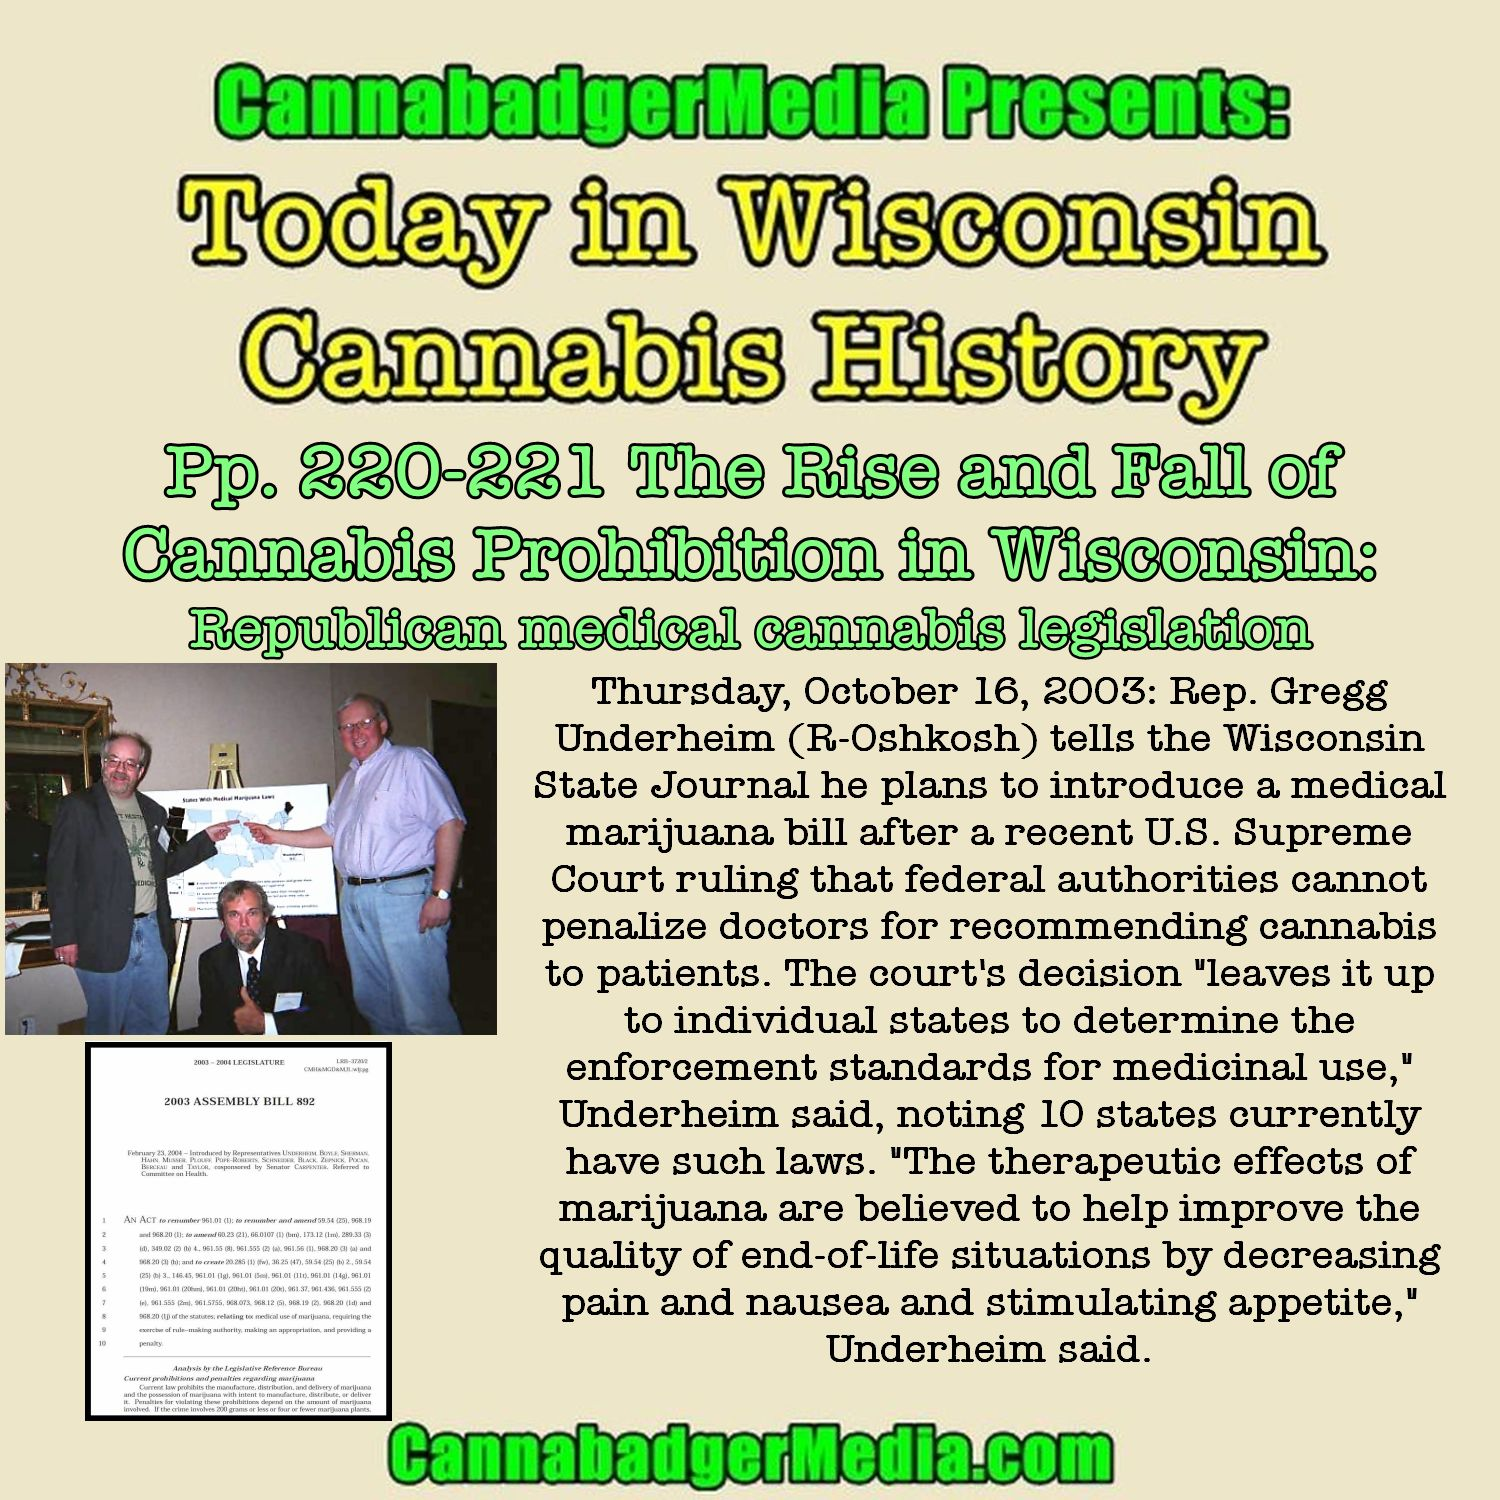 Today in Wisconsin Cannabis History: Pp. 220-221 The Rise and Fall of Cannabis Prohibition in Wisconsin: Republican Health Committee chair introduces medical cannabis bill